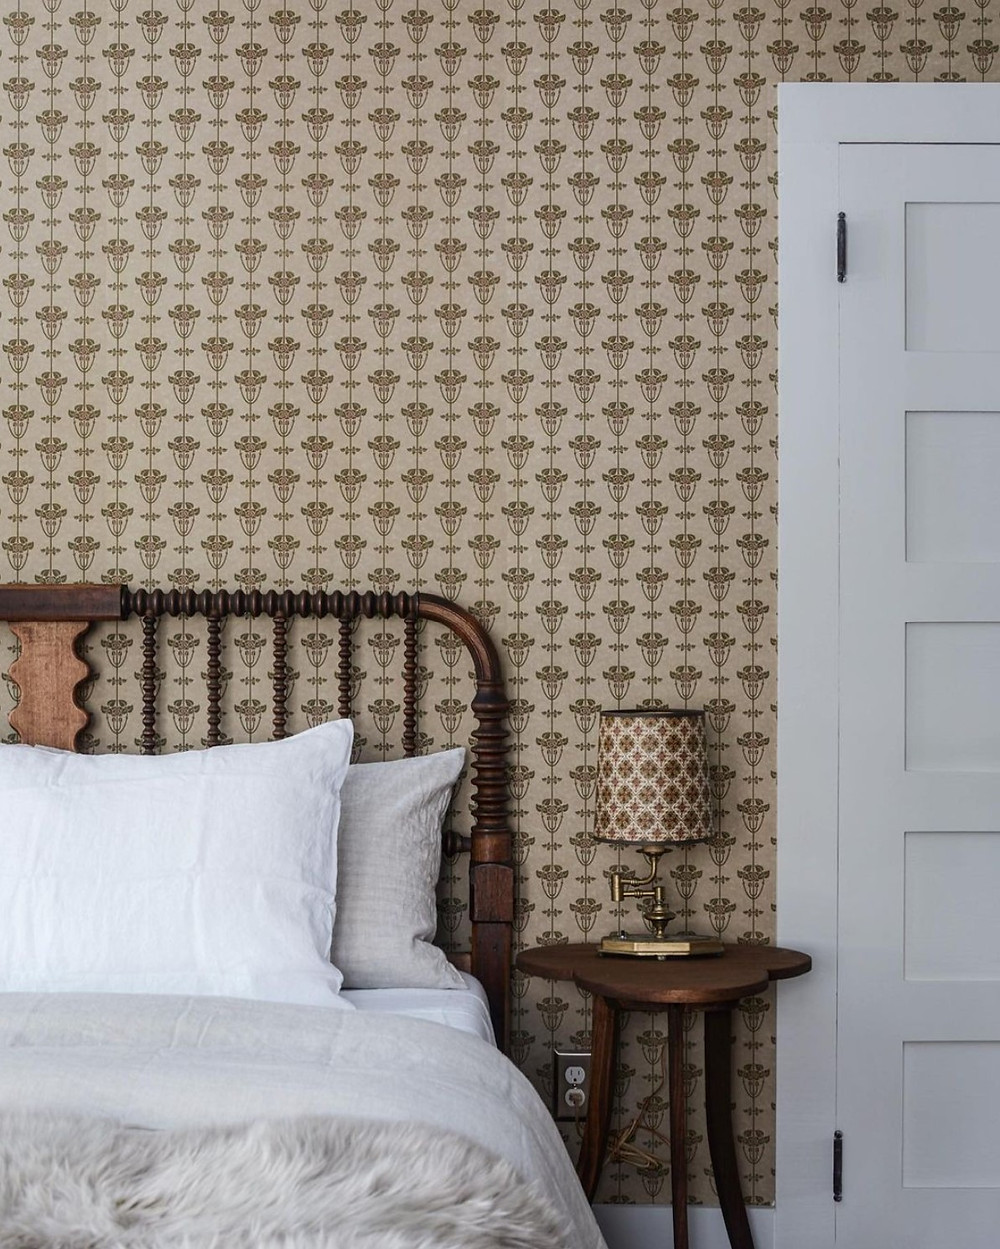 bedroom with wallpaper by Jersey Ice Cream co.